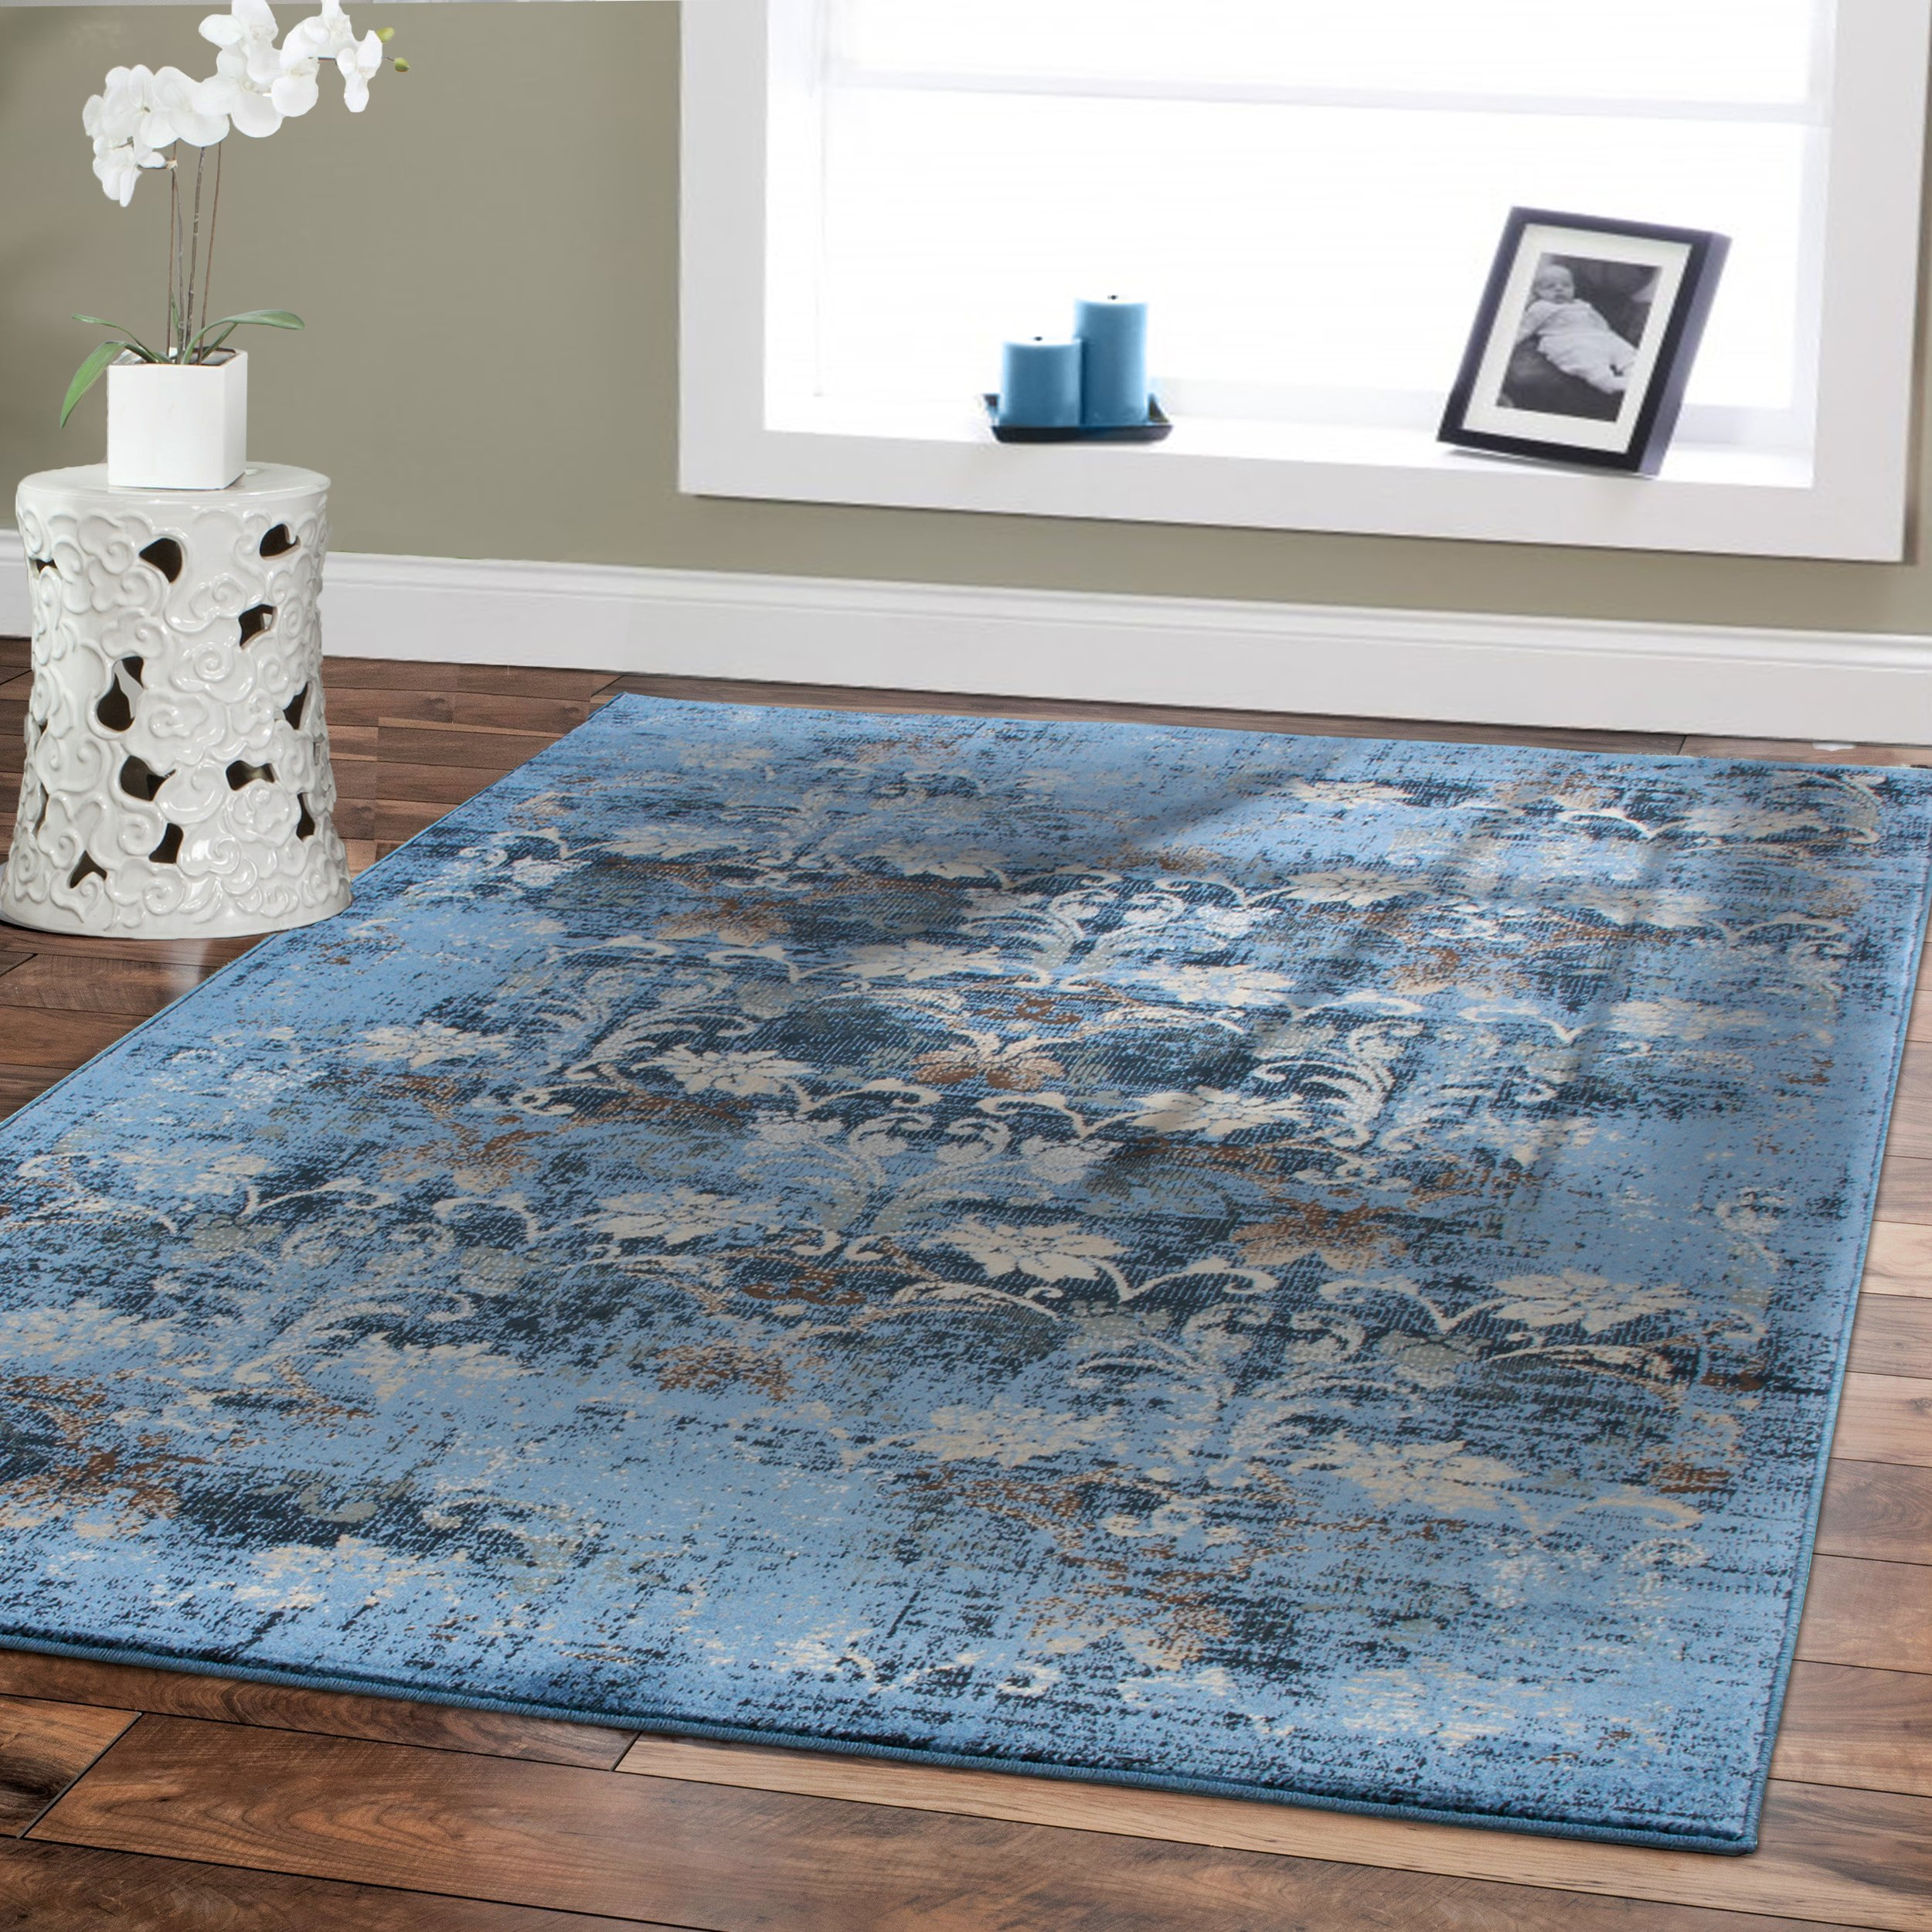 Premium soft rugs luxury contemporary rug dark blue 5x8 rugs fashion modern rug for living room